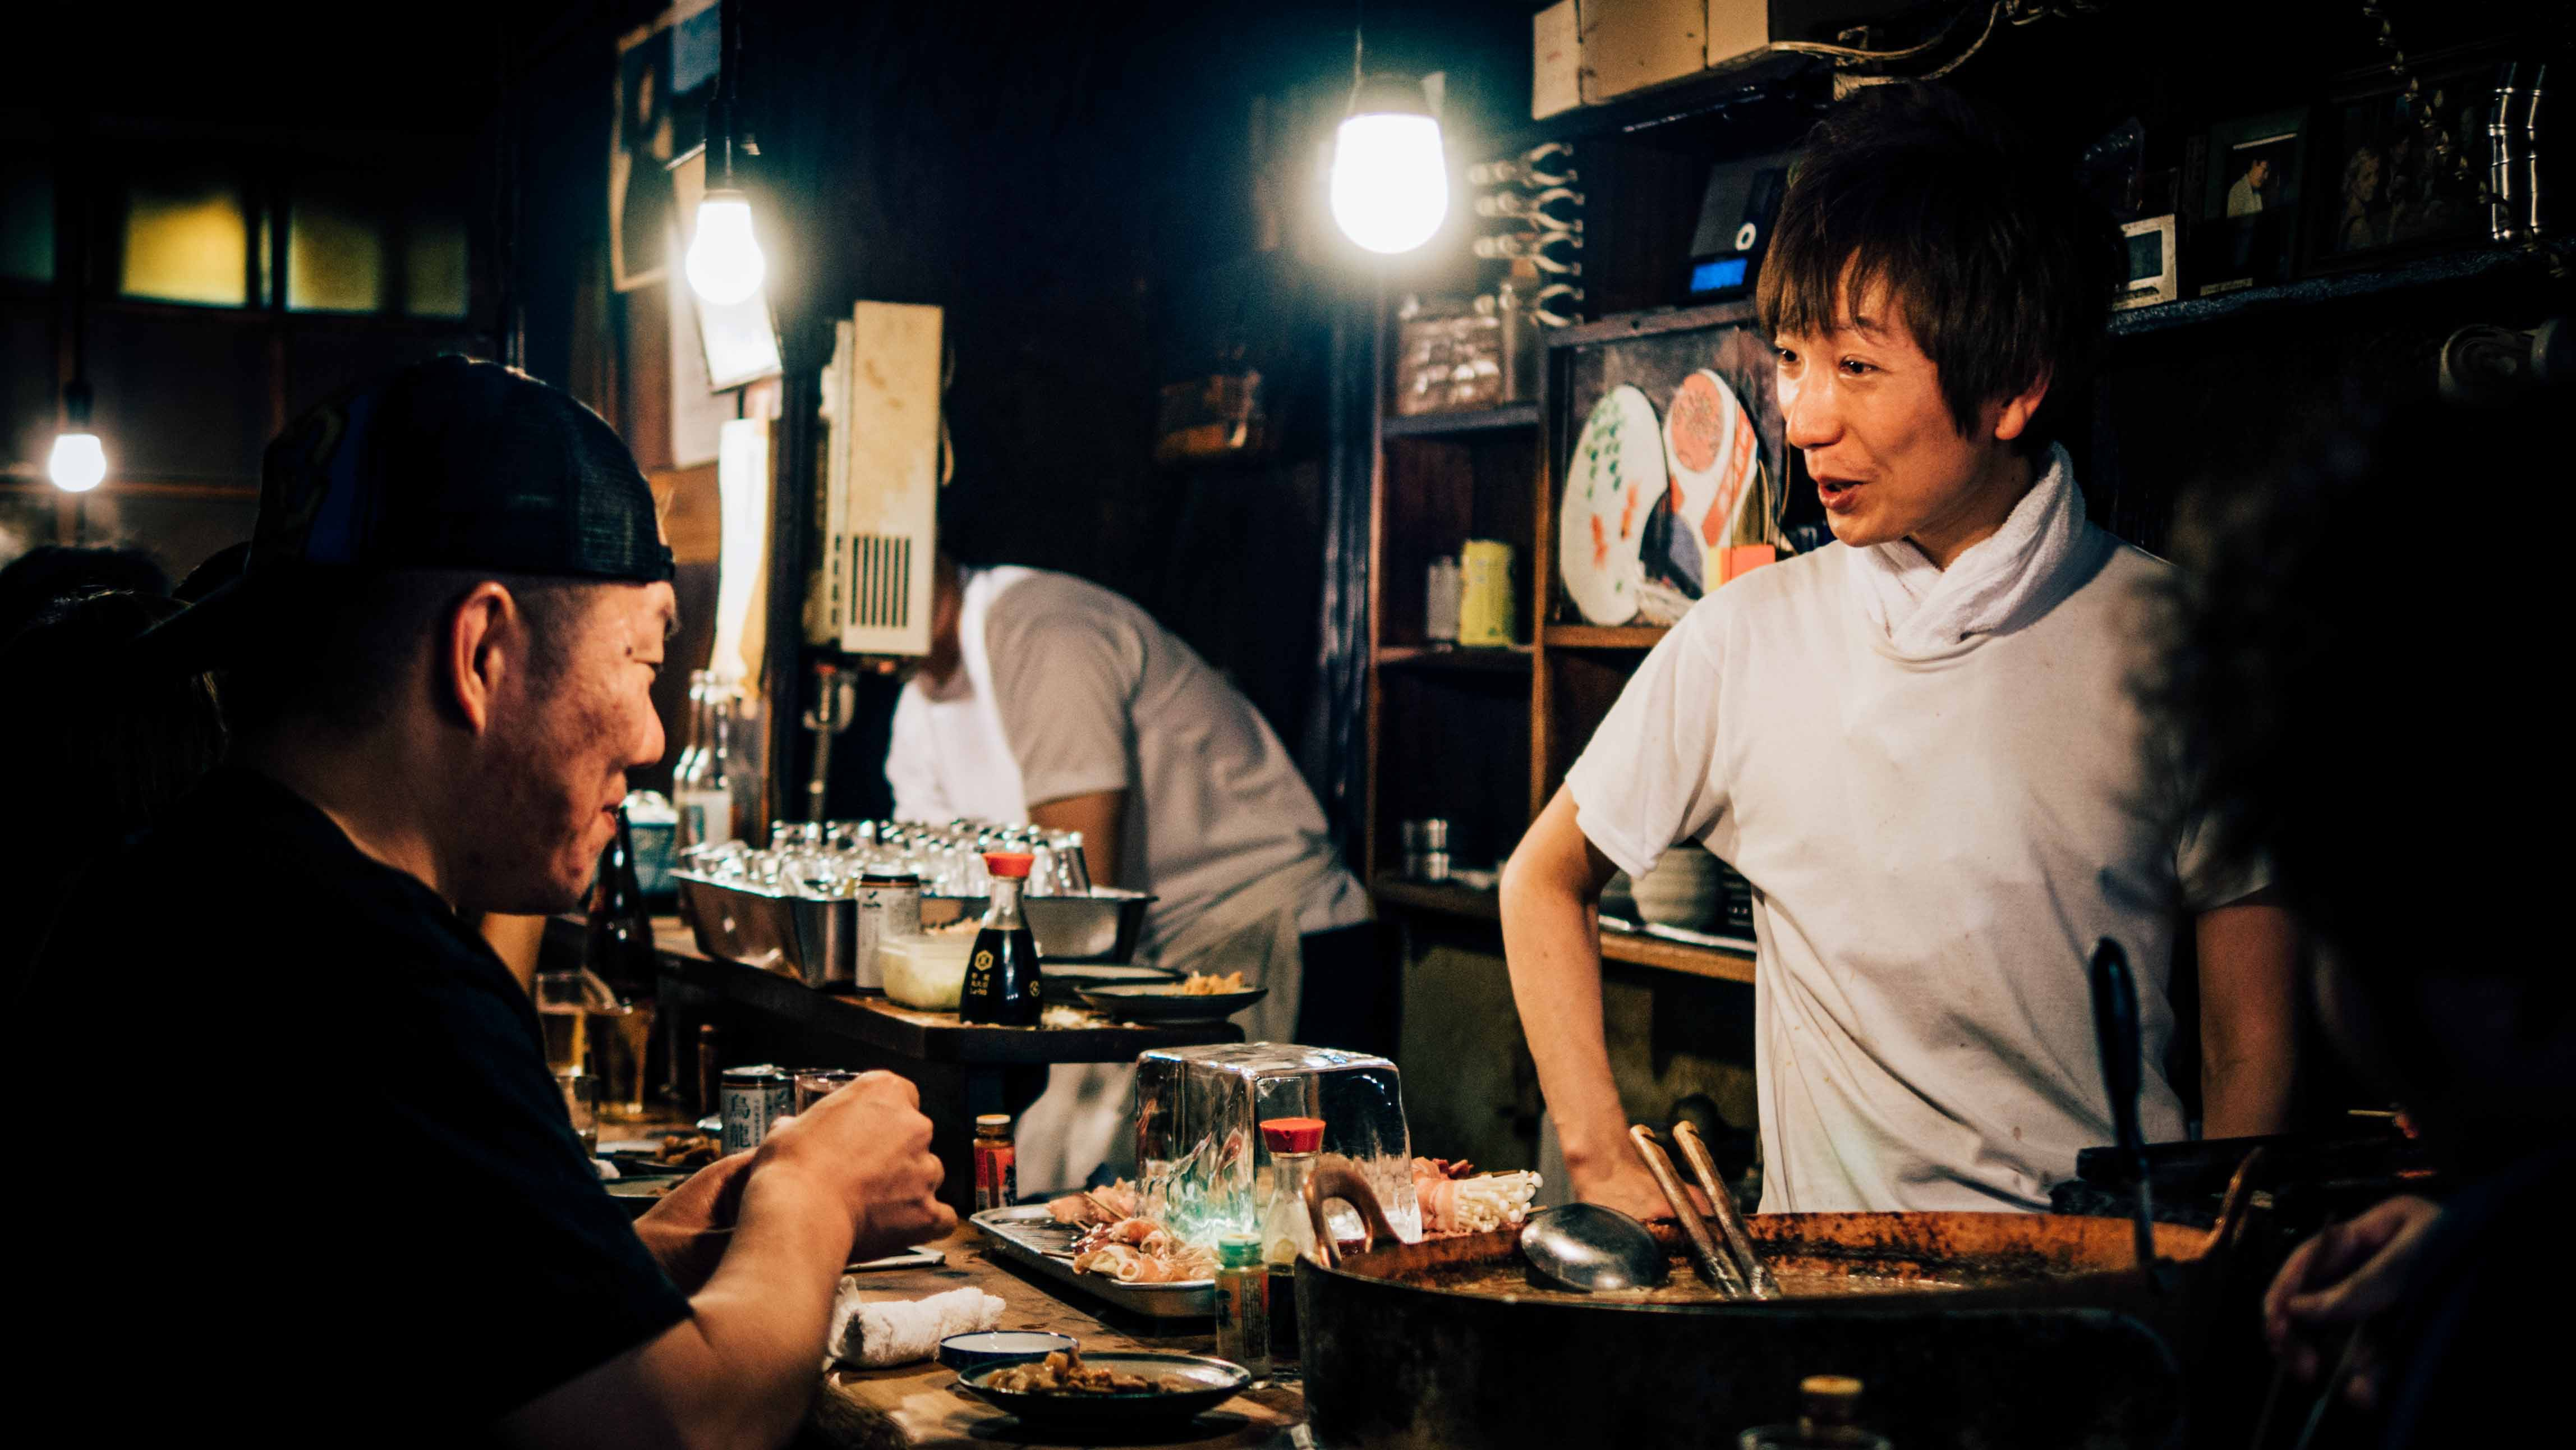 Waiter and patron talk over a meal at a restaurant in Japan